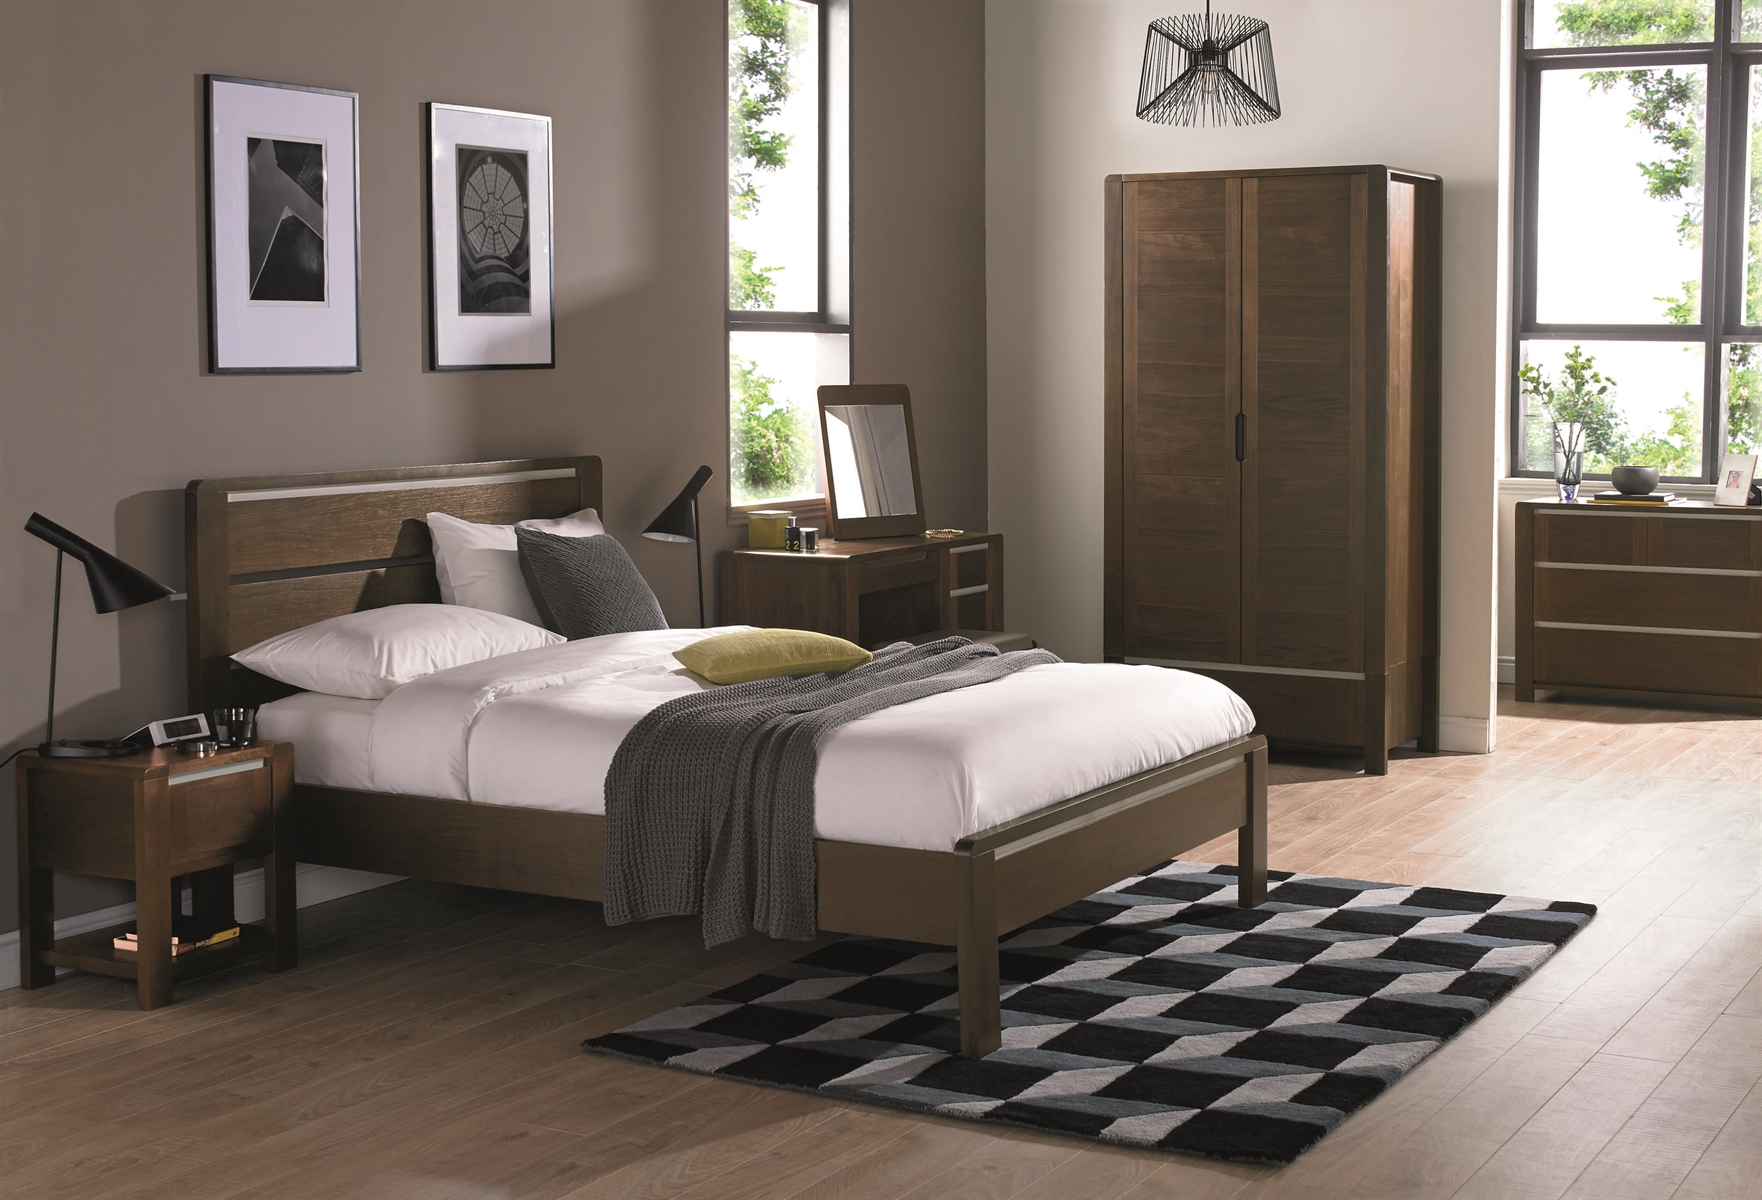 Walnut Bedroom Furniture Uk > PierPointSprings.com